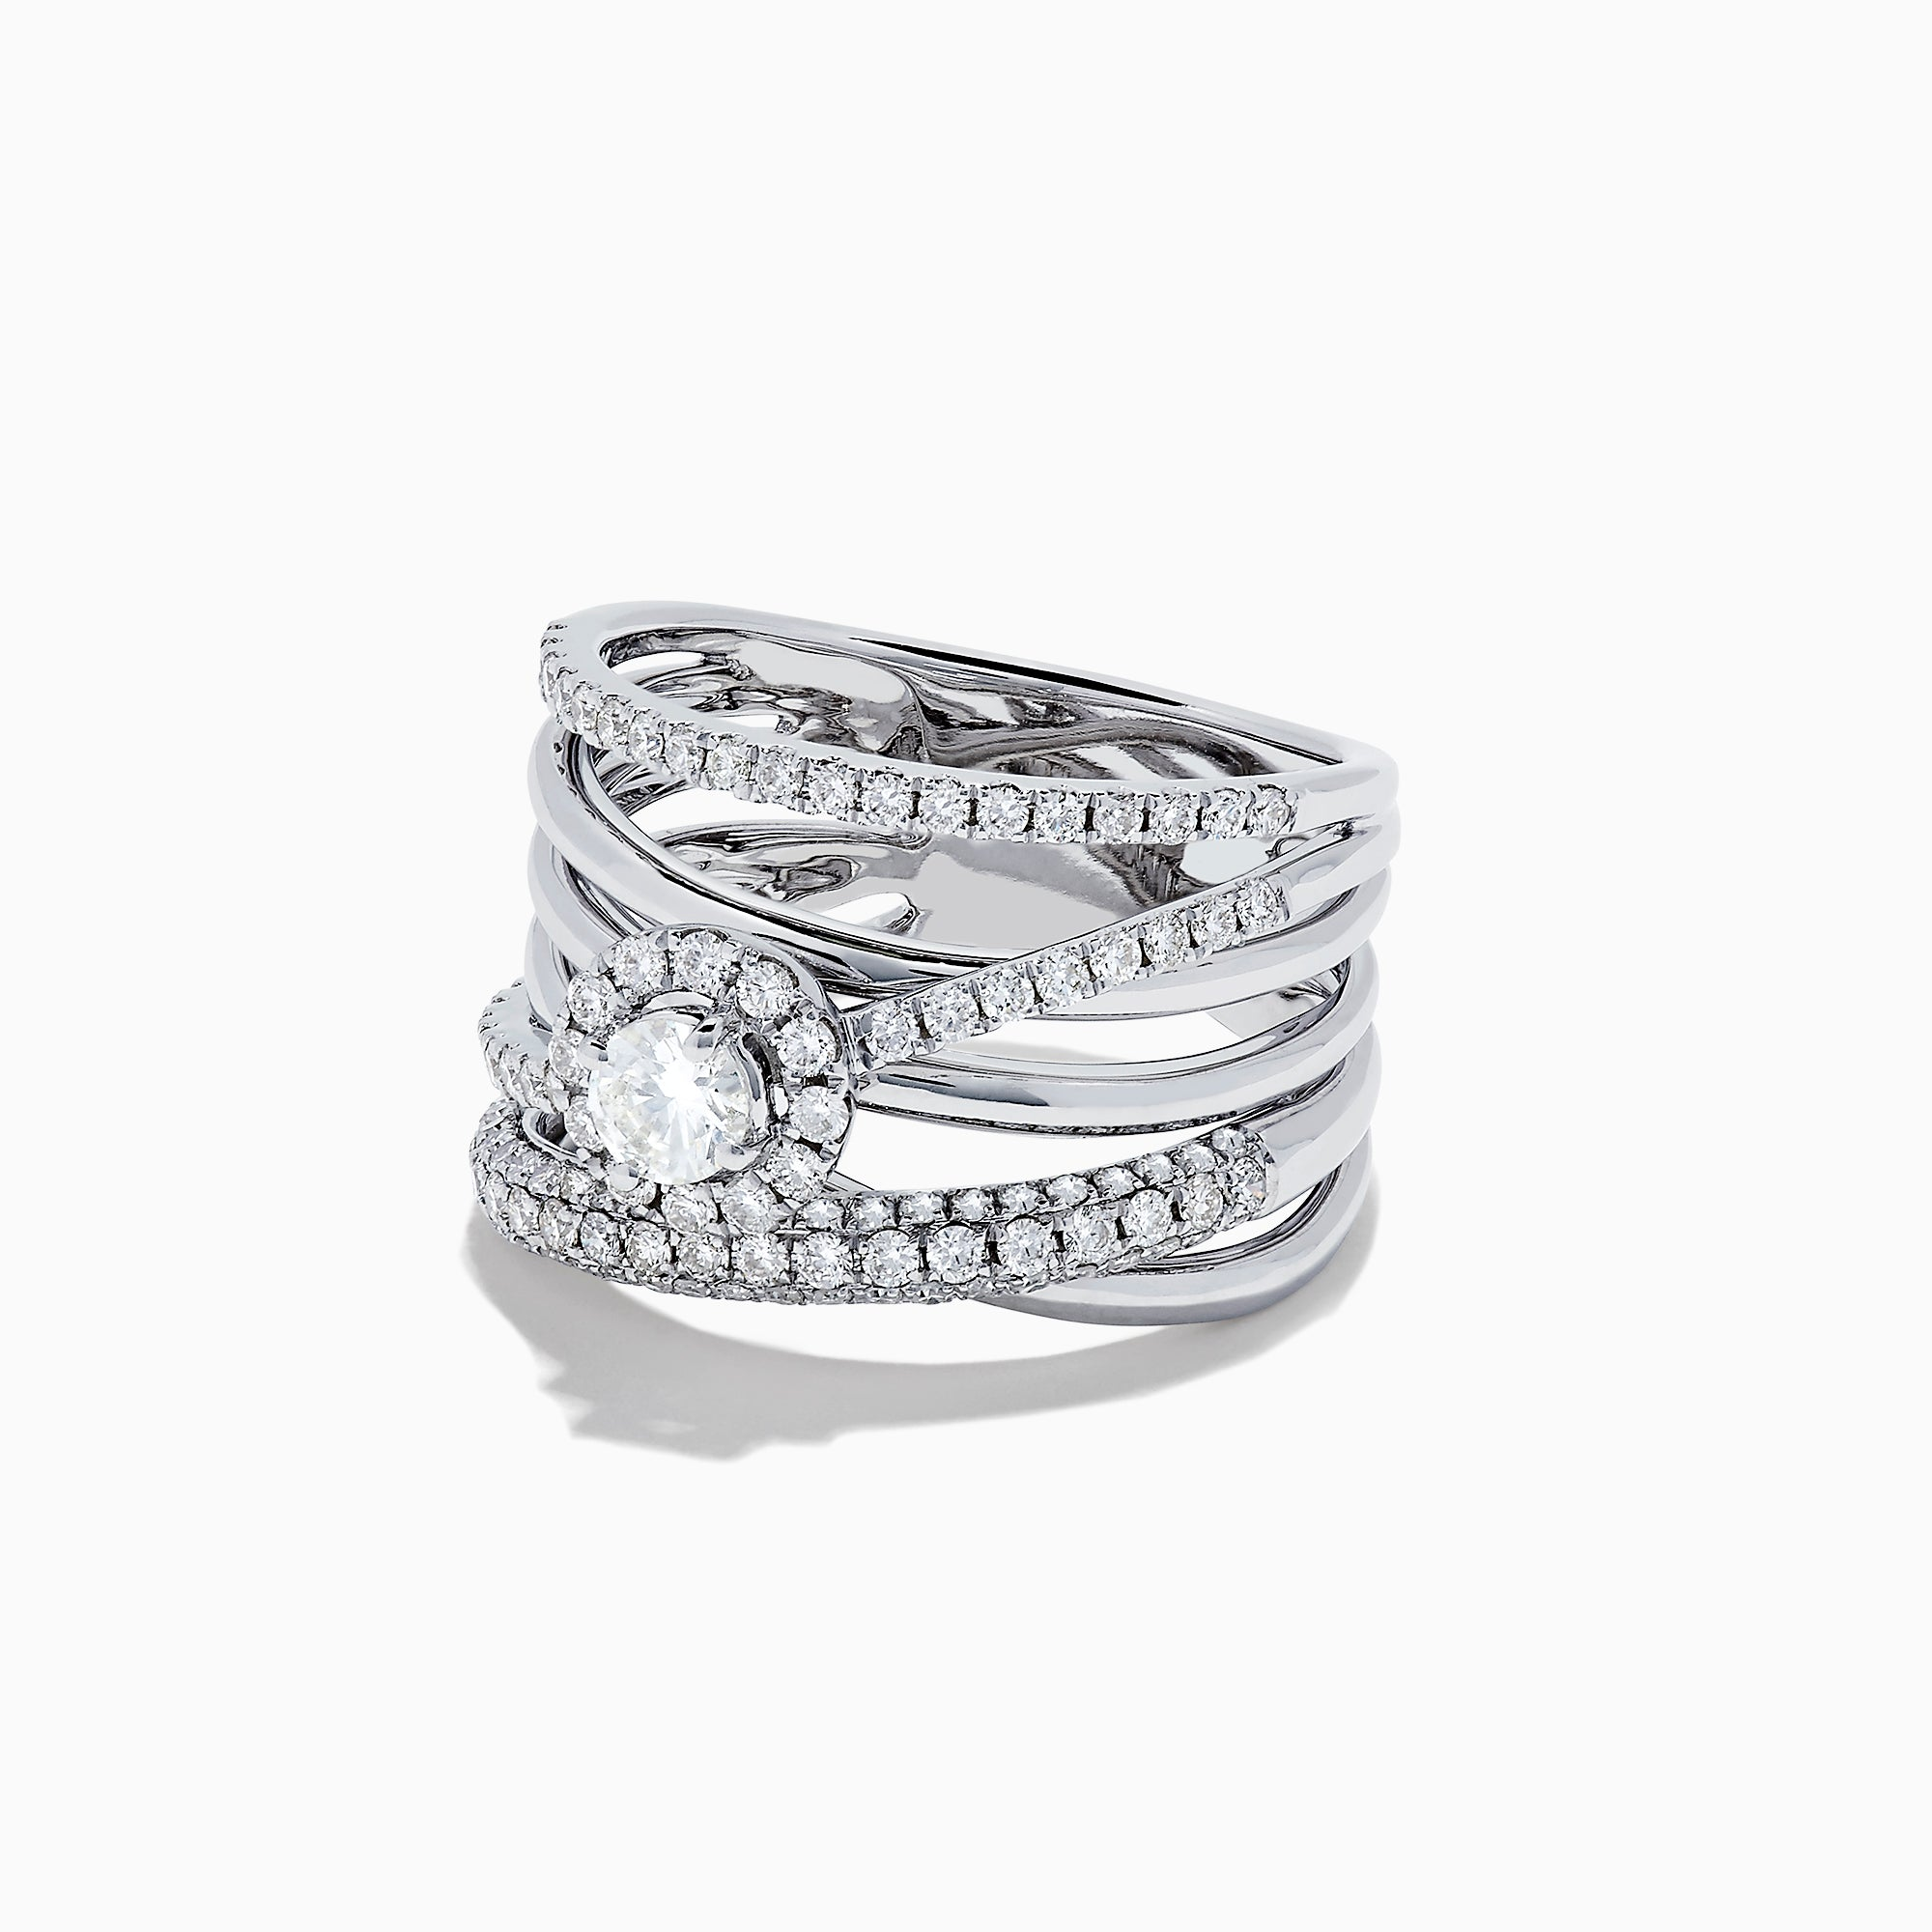 Effy Pave Classica 14K White Gold Diamond Ring, 1.12 TCW